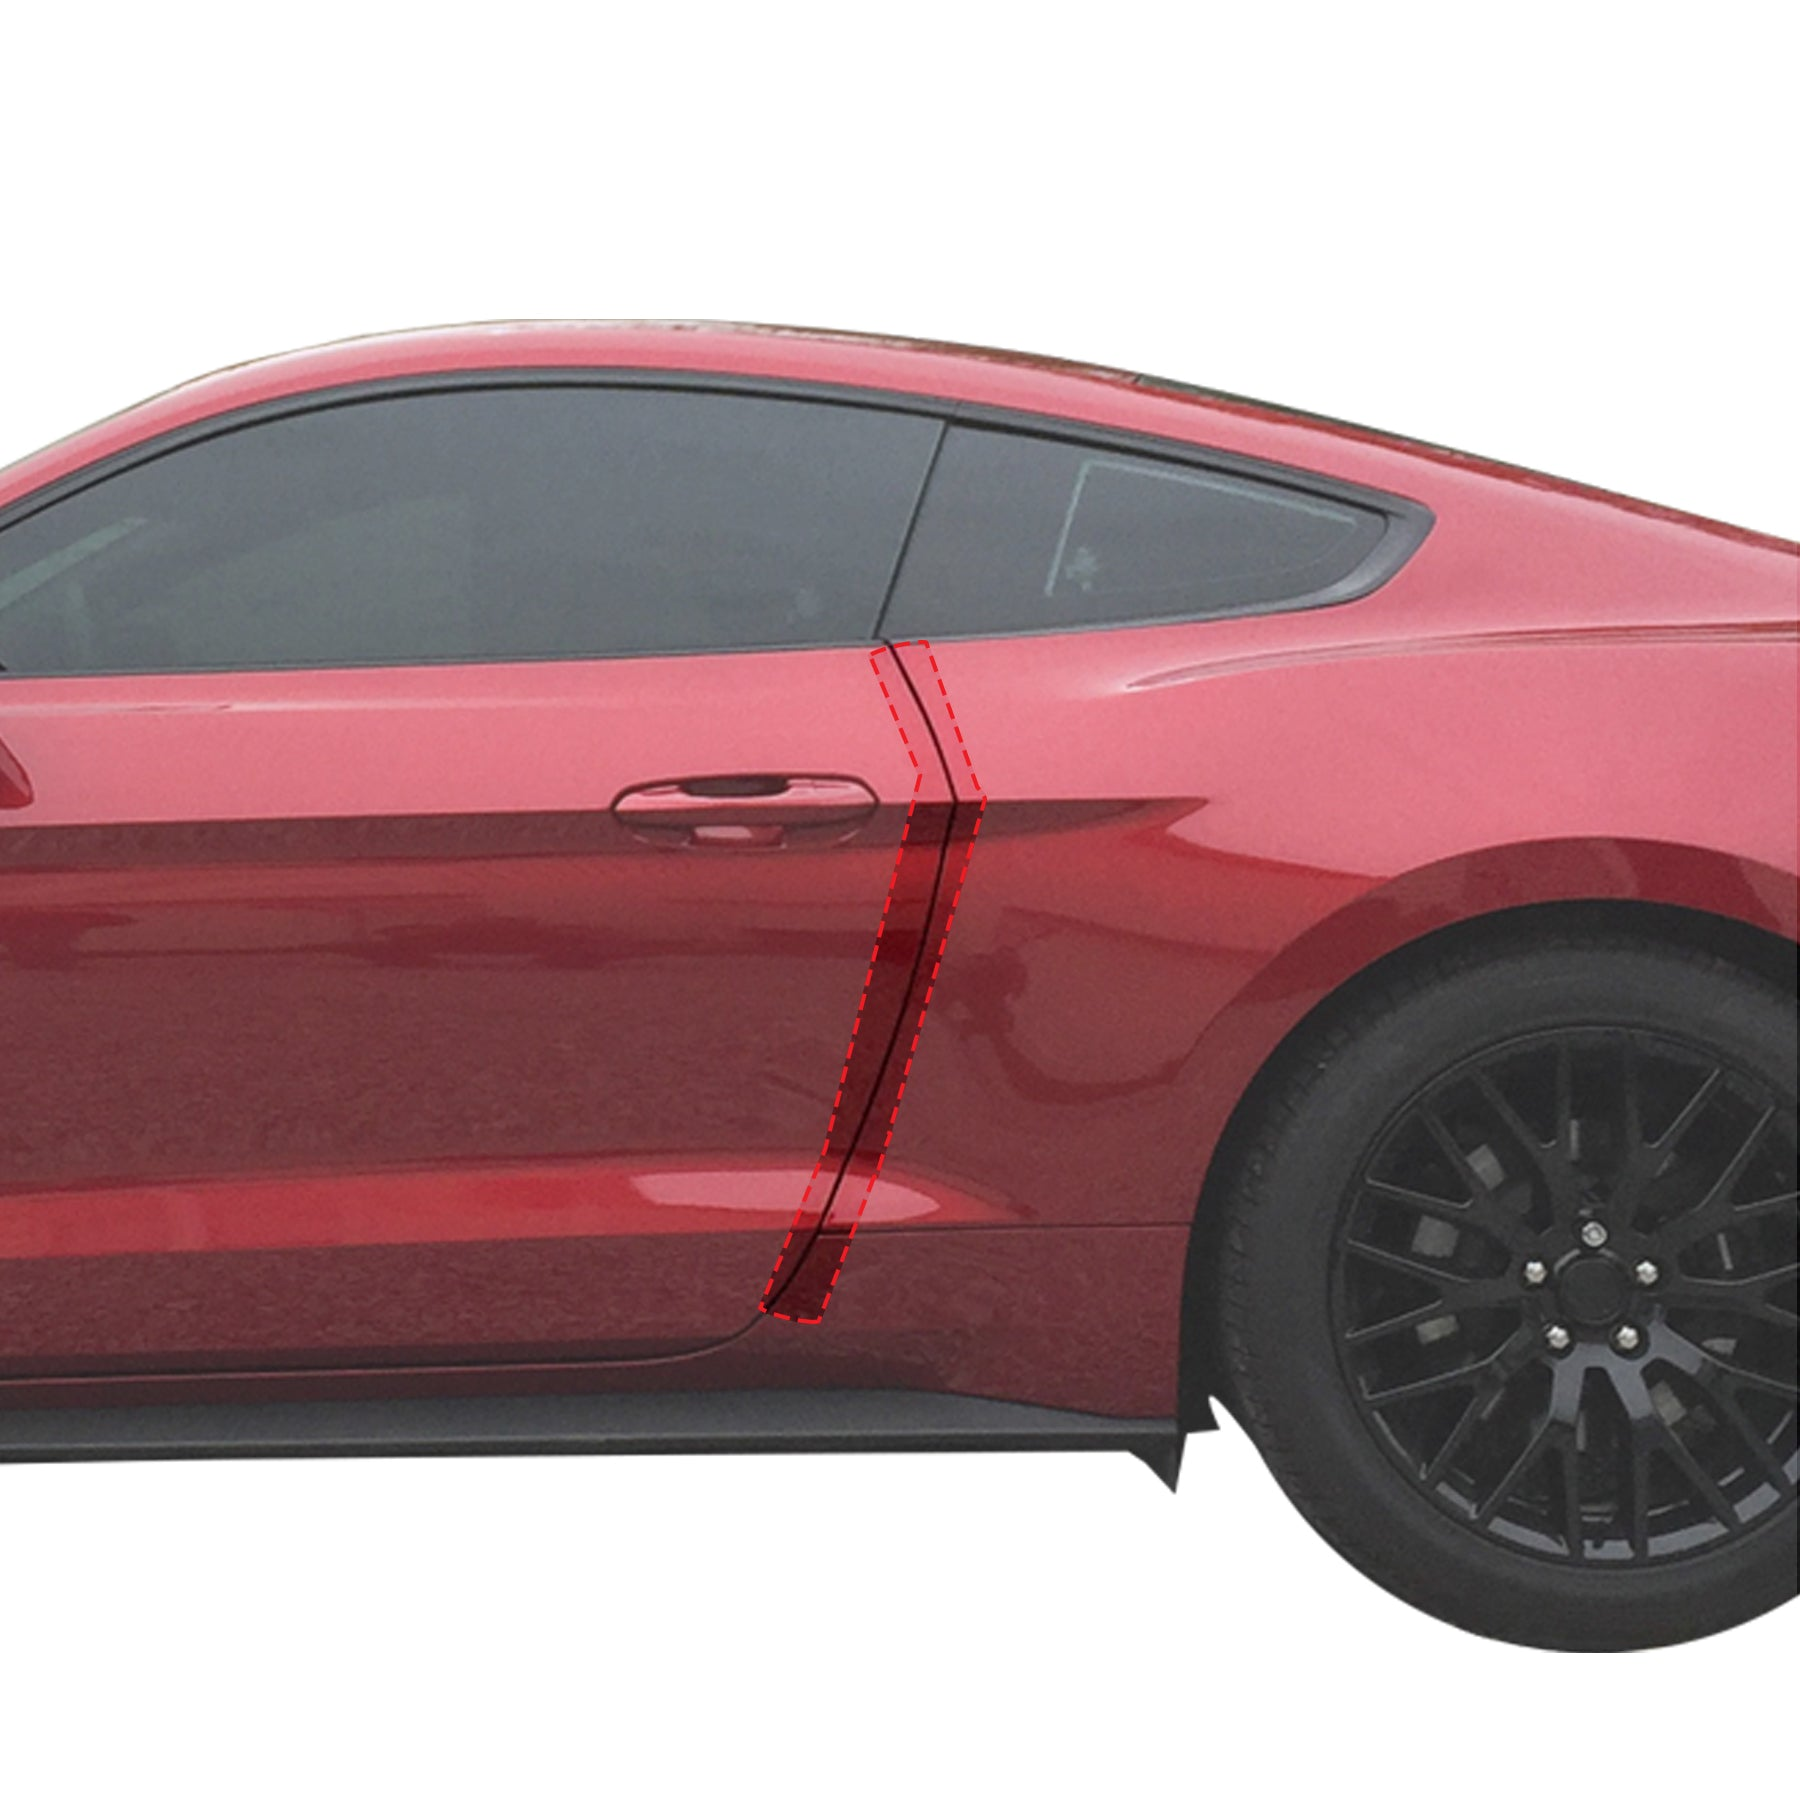 Red Hound Auto Door Edge Lip Guards 2015-2018 Compatible with Ford Mustang 2pc Clear Paint Protector Film Not Universal Pre-Cut Custom Fit